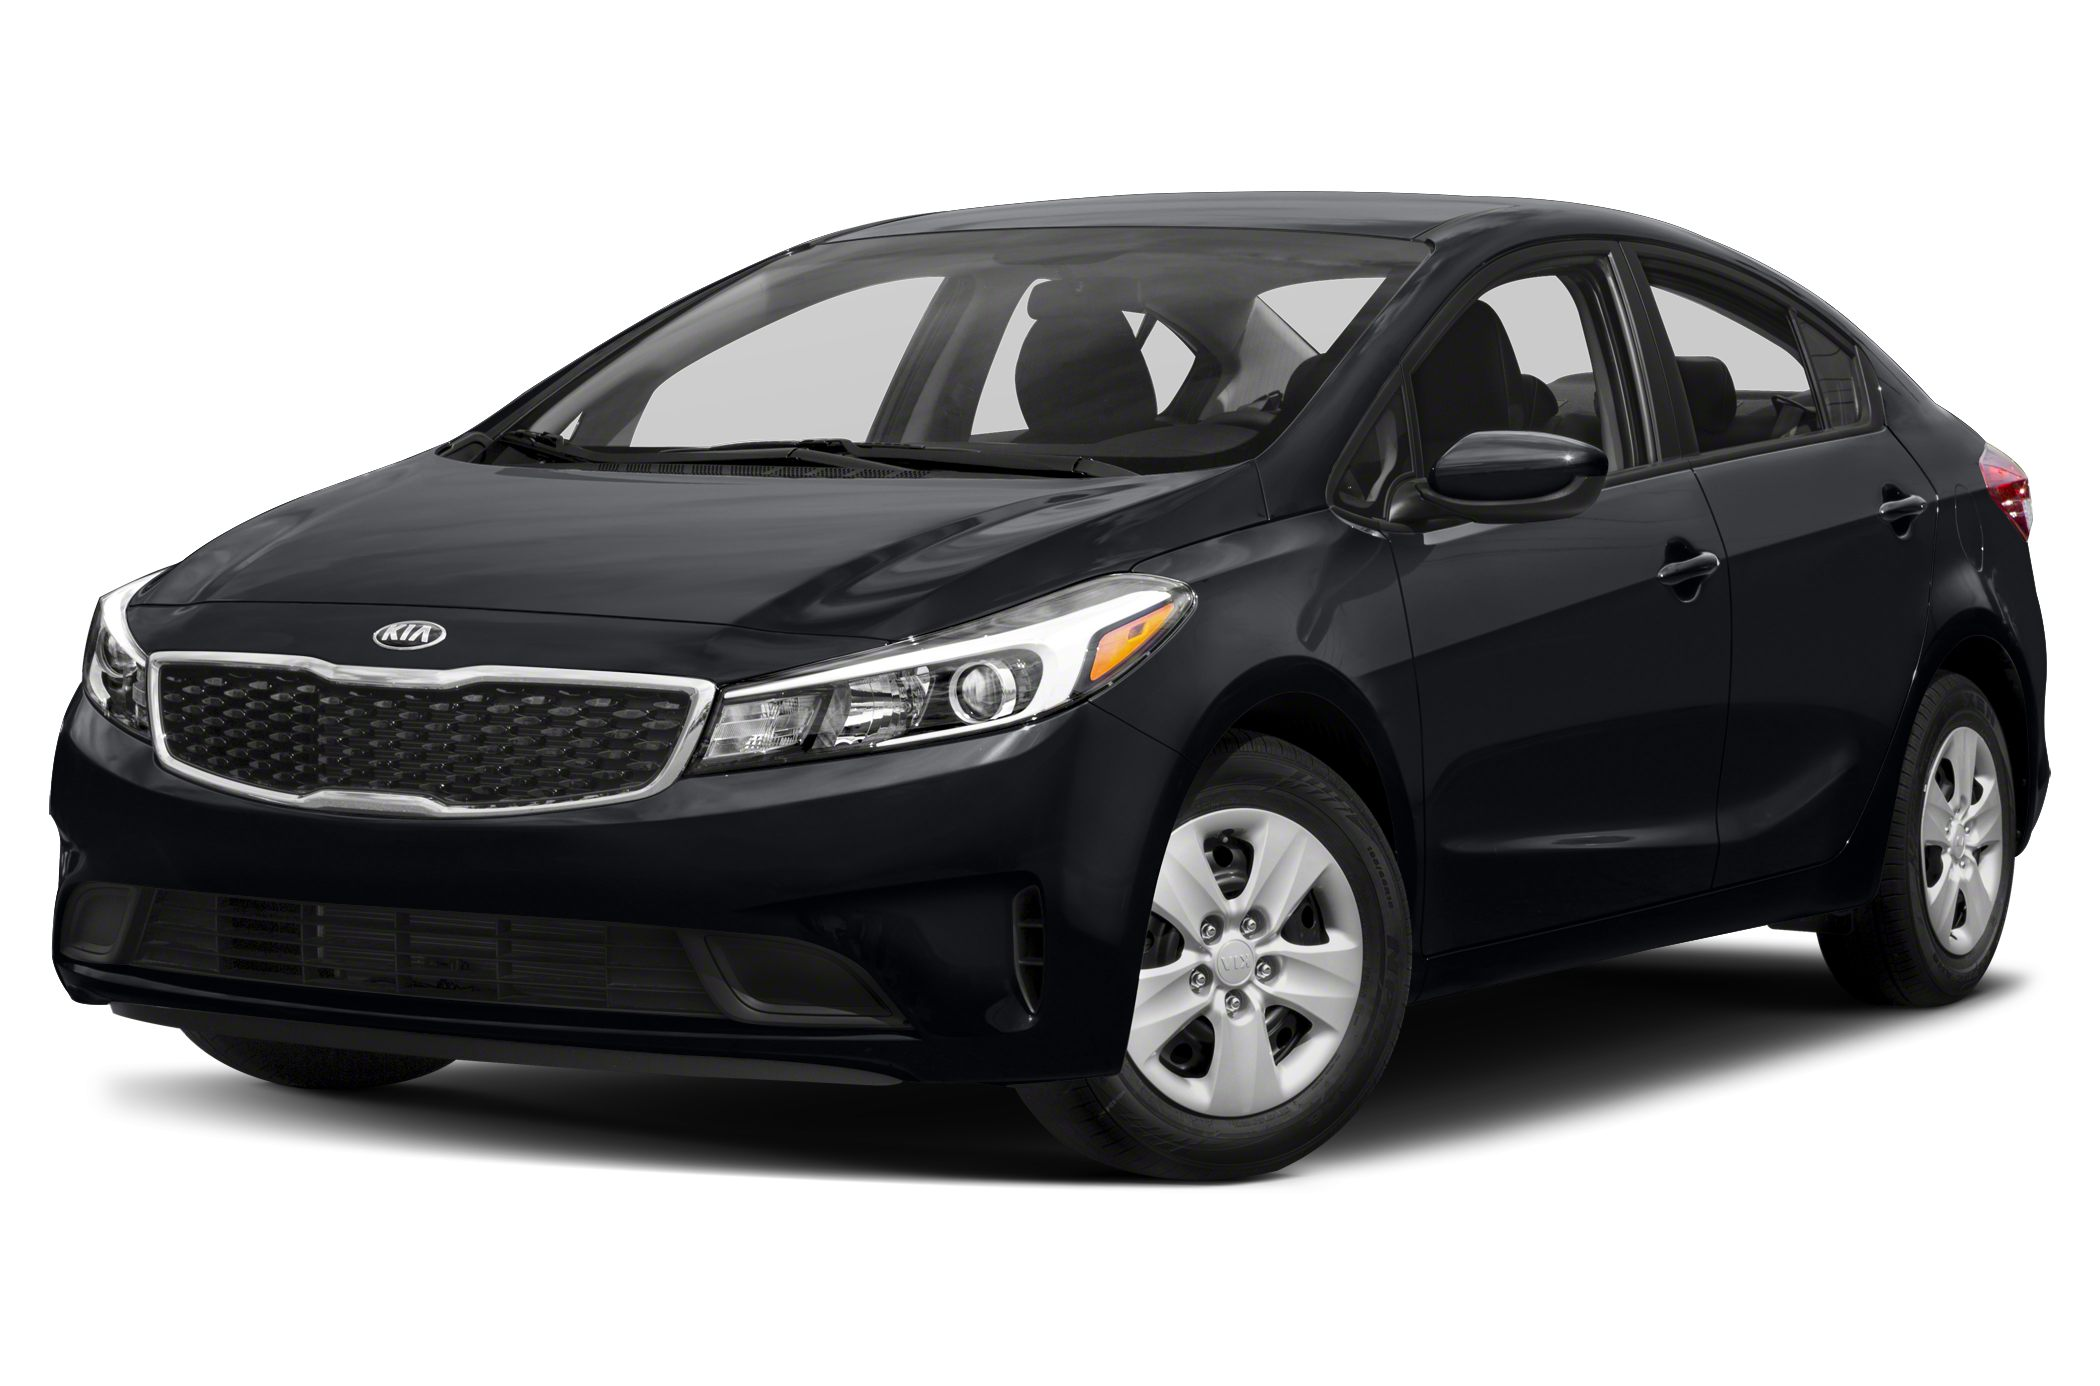 2018 Kia Forte Owner Reviews and Ratings